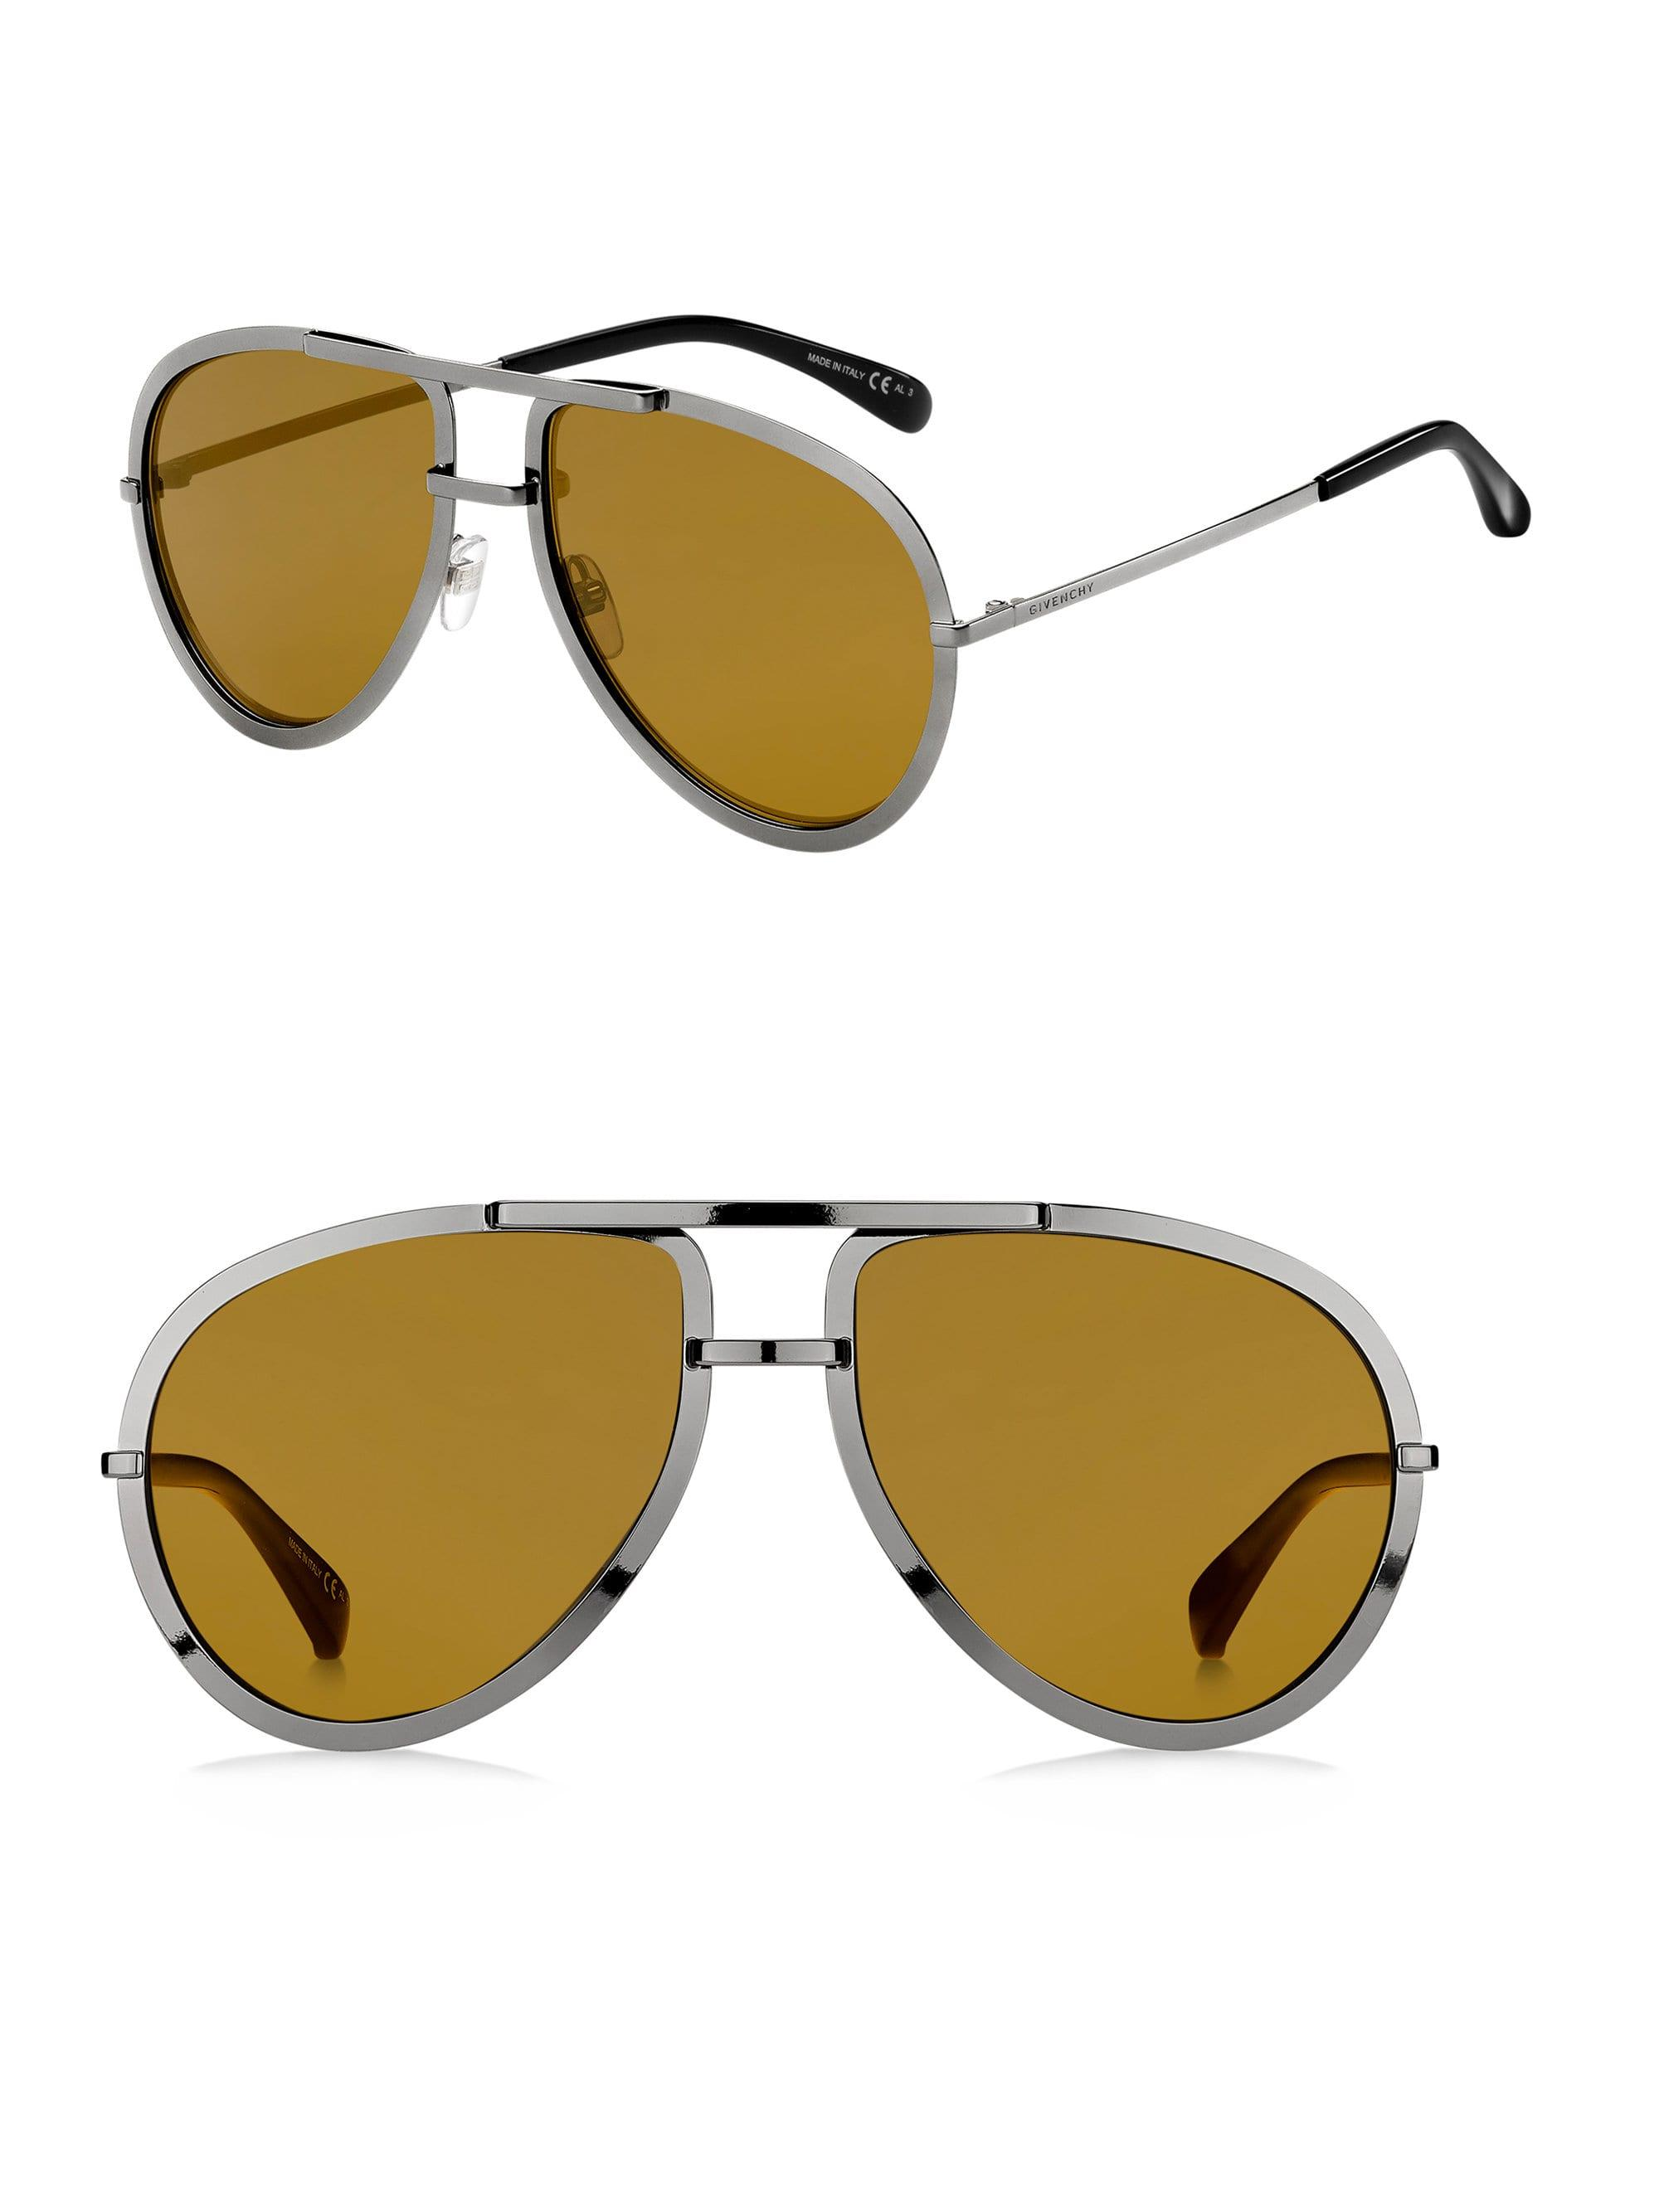 dd3c36c6a25 Givenchy - Metallic Men s 60mm Aviator Sunglasses - Gold for Men - Lyst.  View fullscreen